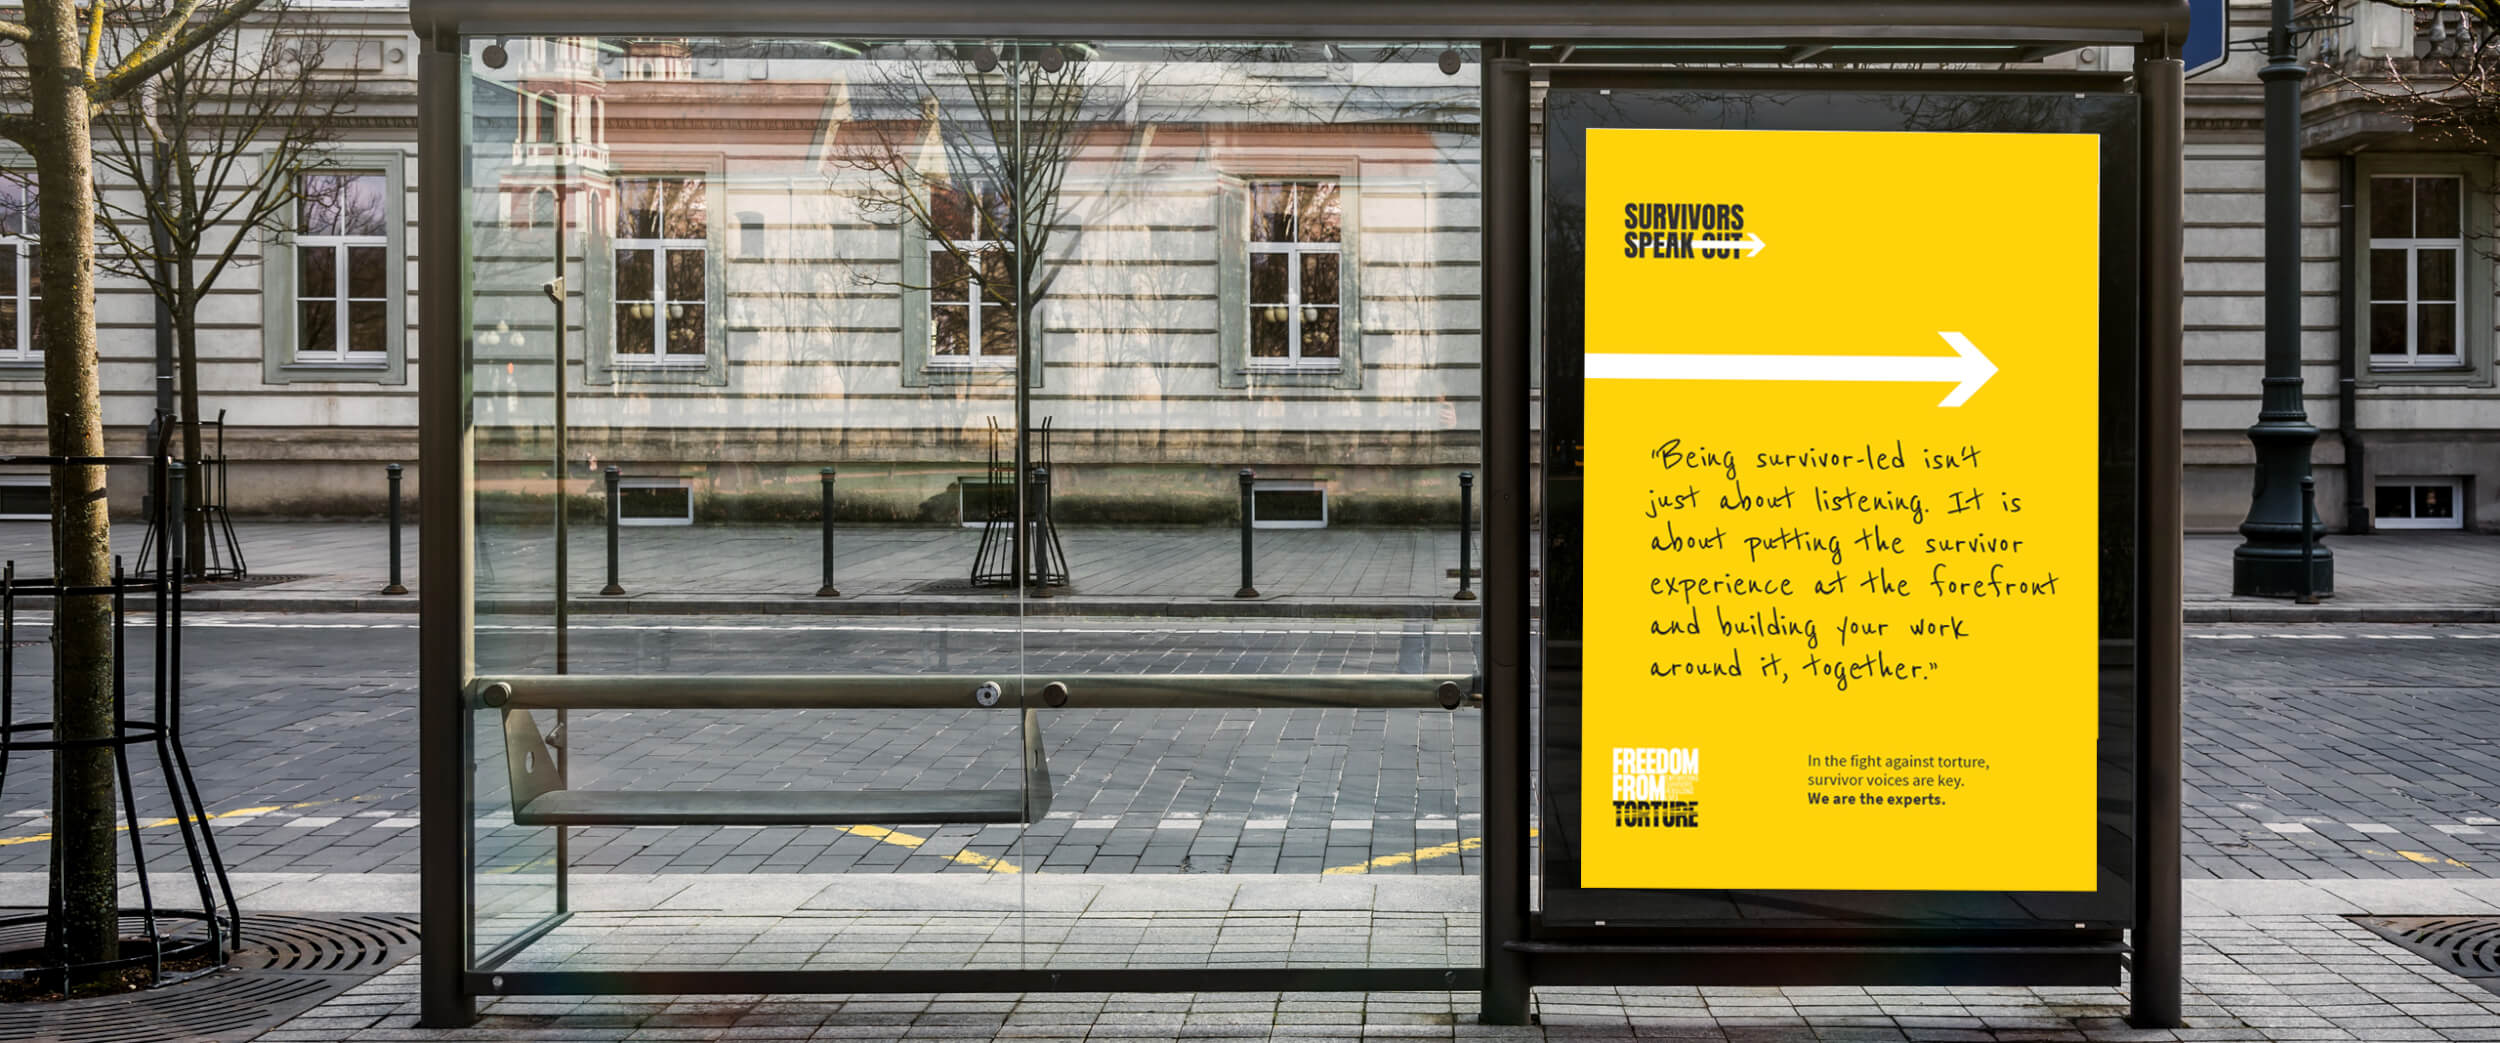 Survivors Speak OUT charity brand awareness bus stop poster